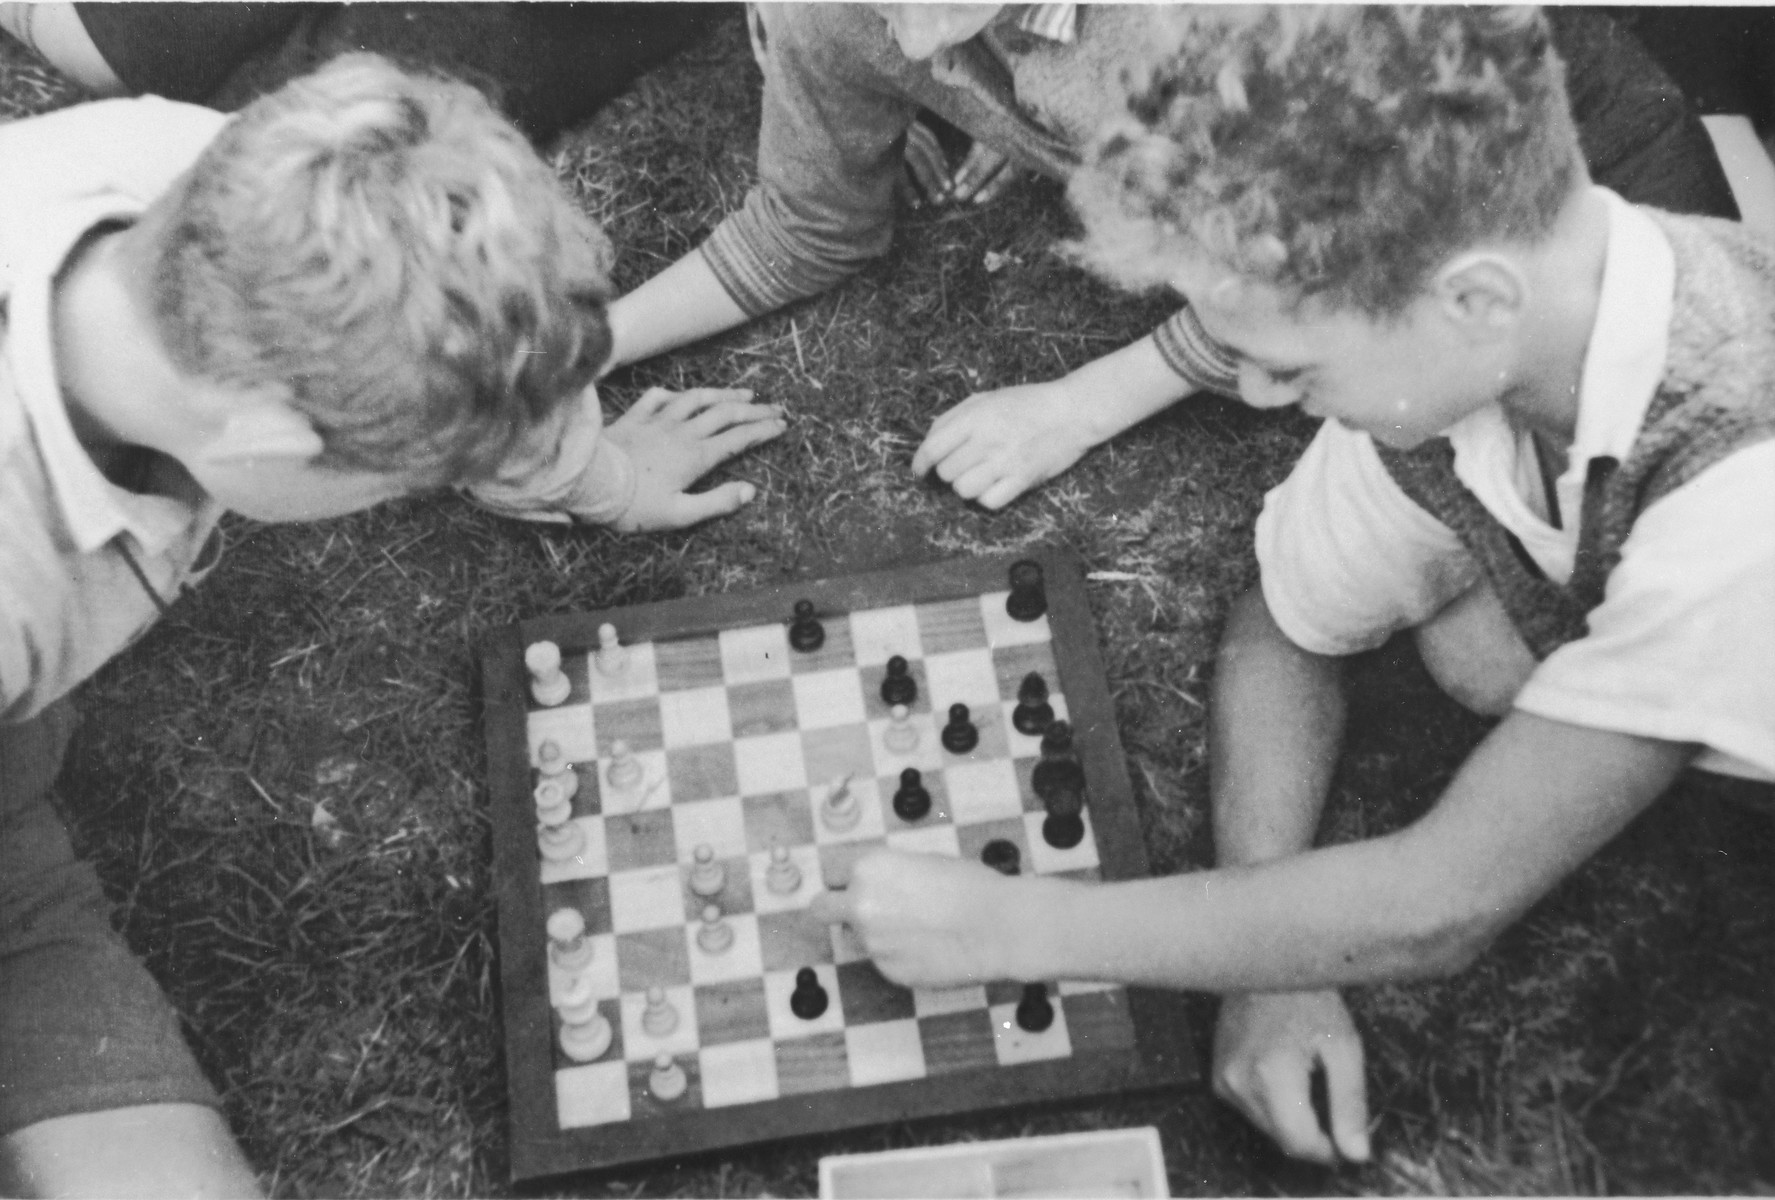 Jewish children from Germany play chess at a Kinderlager [children's recreational summer camp] in Horserod, Denmark.    In 1935-36 Norbert Wollheim was involved in organizing groups of German Jewish youth to attend a summer camp in Denmark.